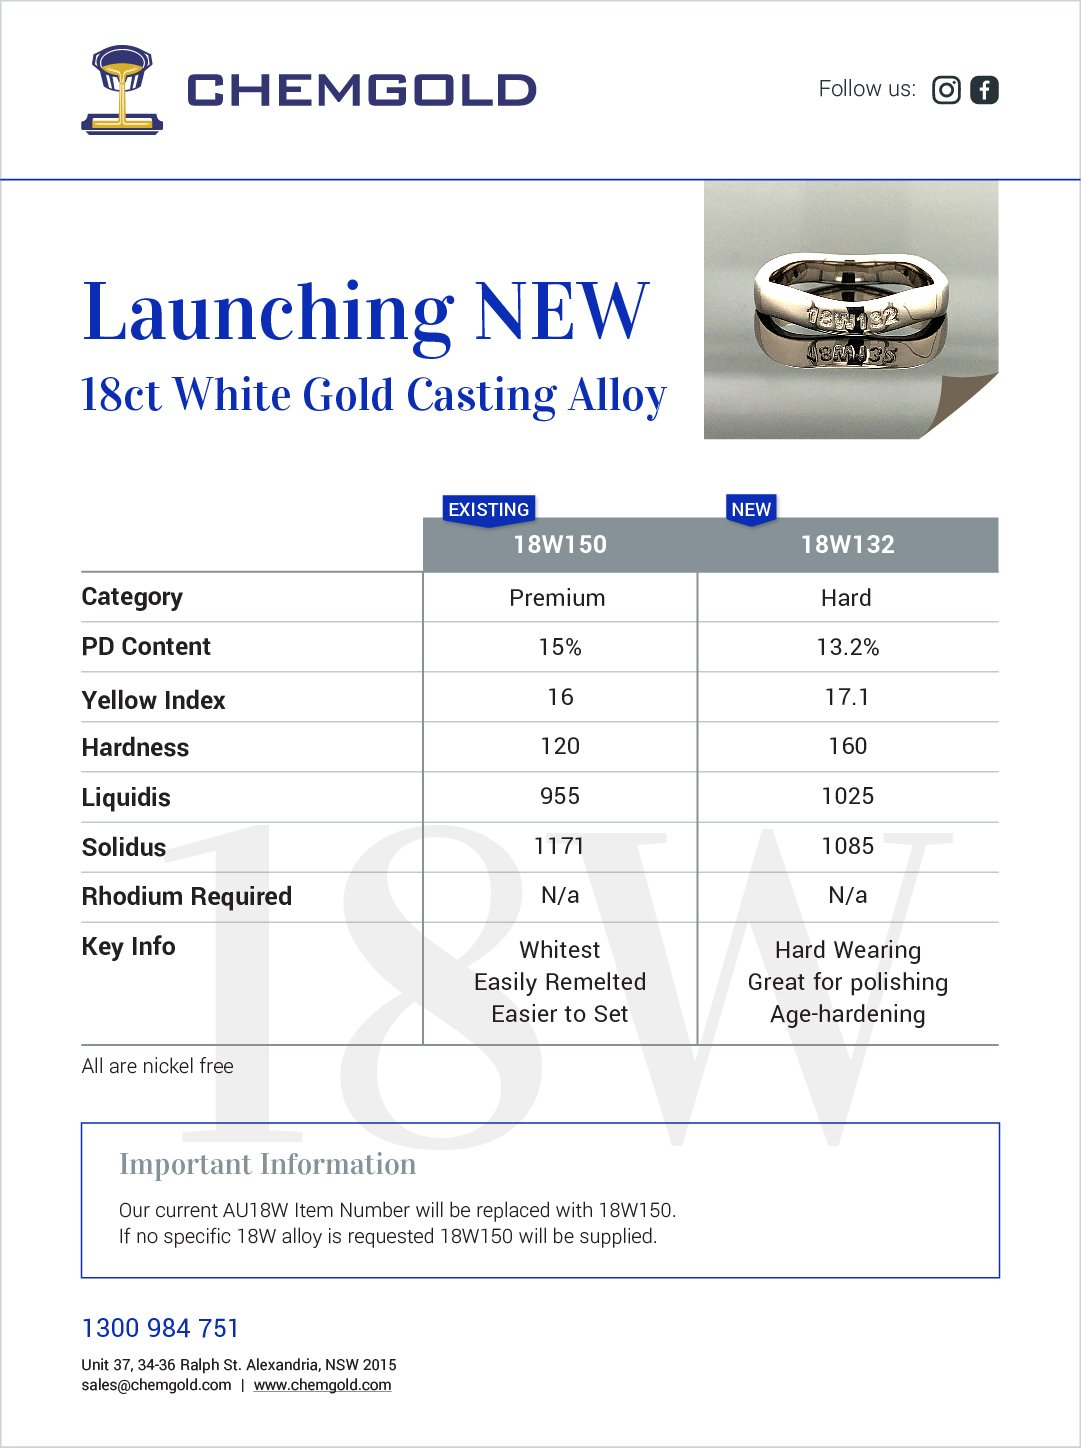 -	Launching New 18ct white gold [18W132] with less PD